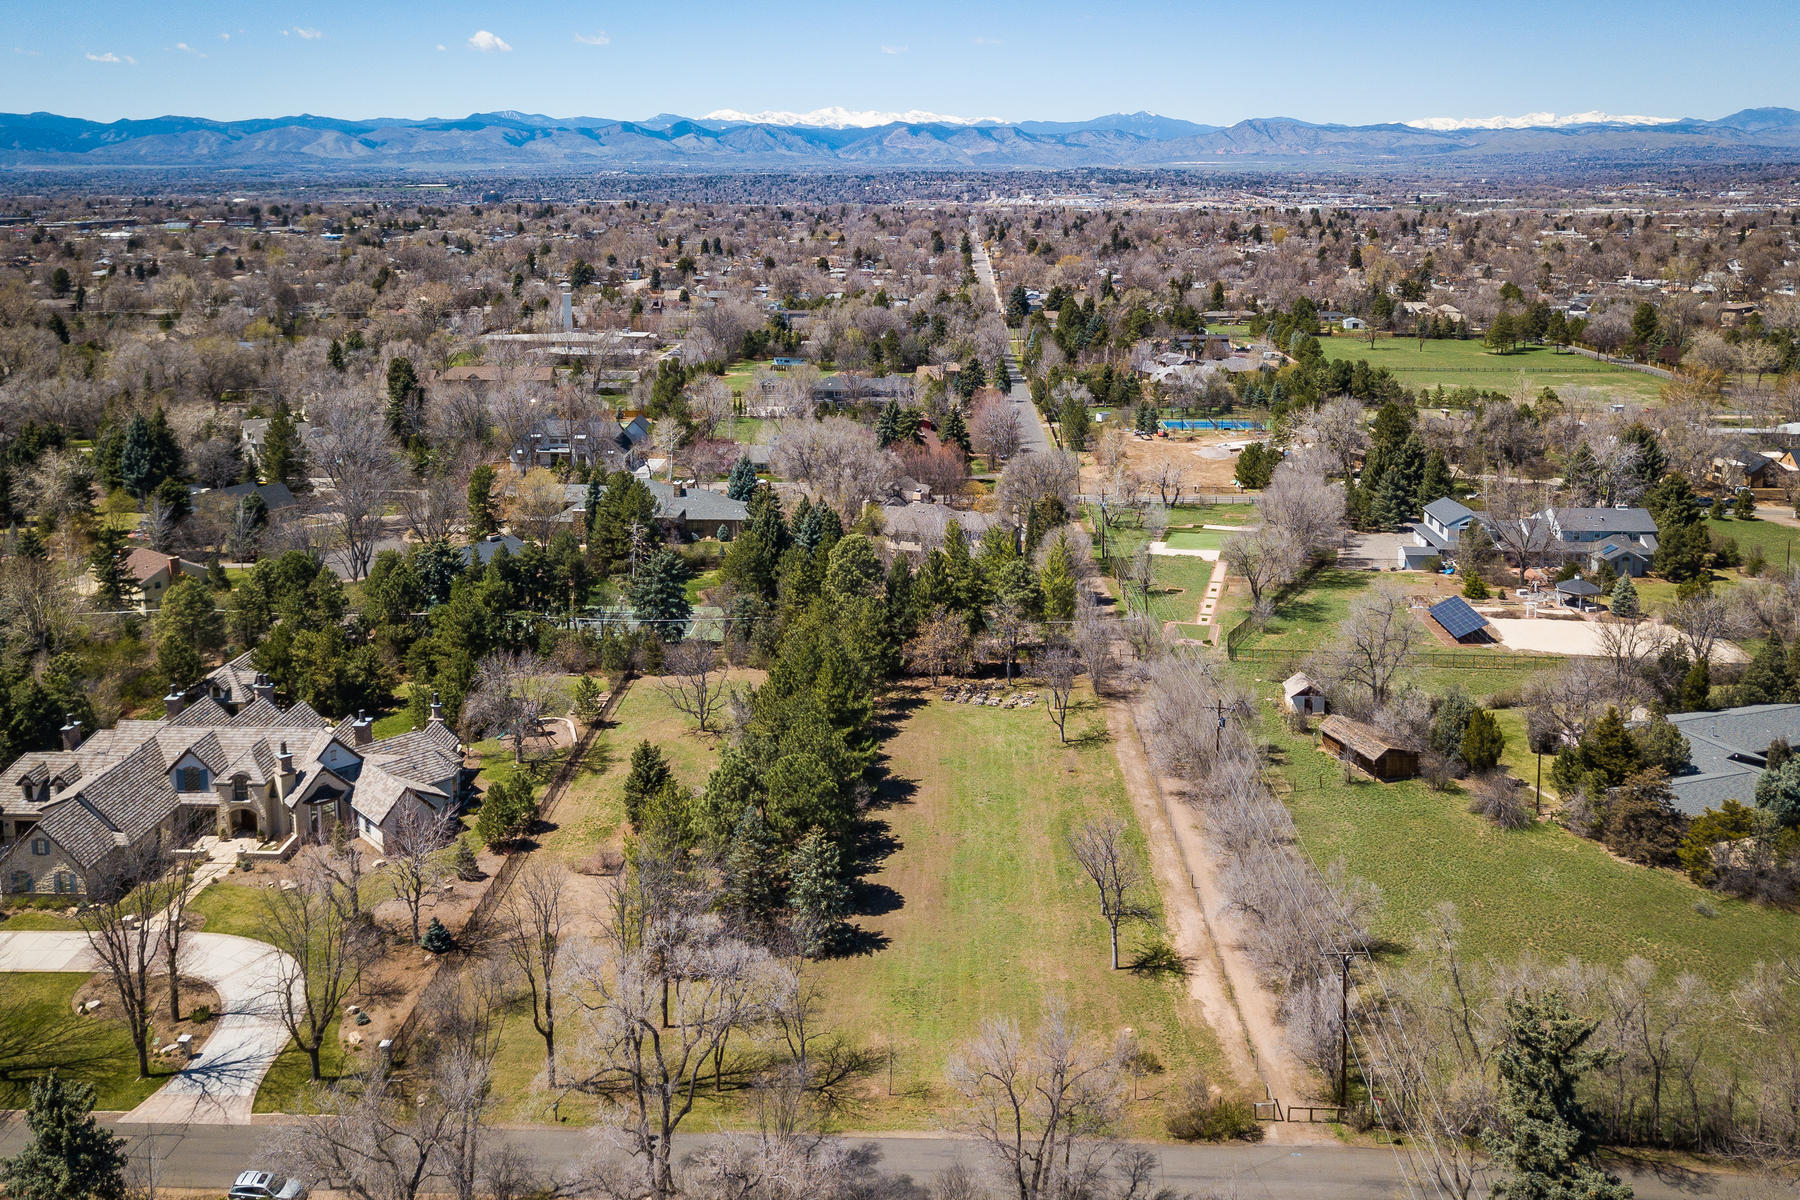 Land for Sale at Gorgeous Park-Like 1.46 Acre Development Site in the Heart of Old Cherry Hills 4525 S Lafayette St Englewood, Colorado 80113 United States